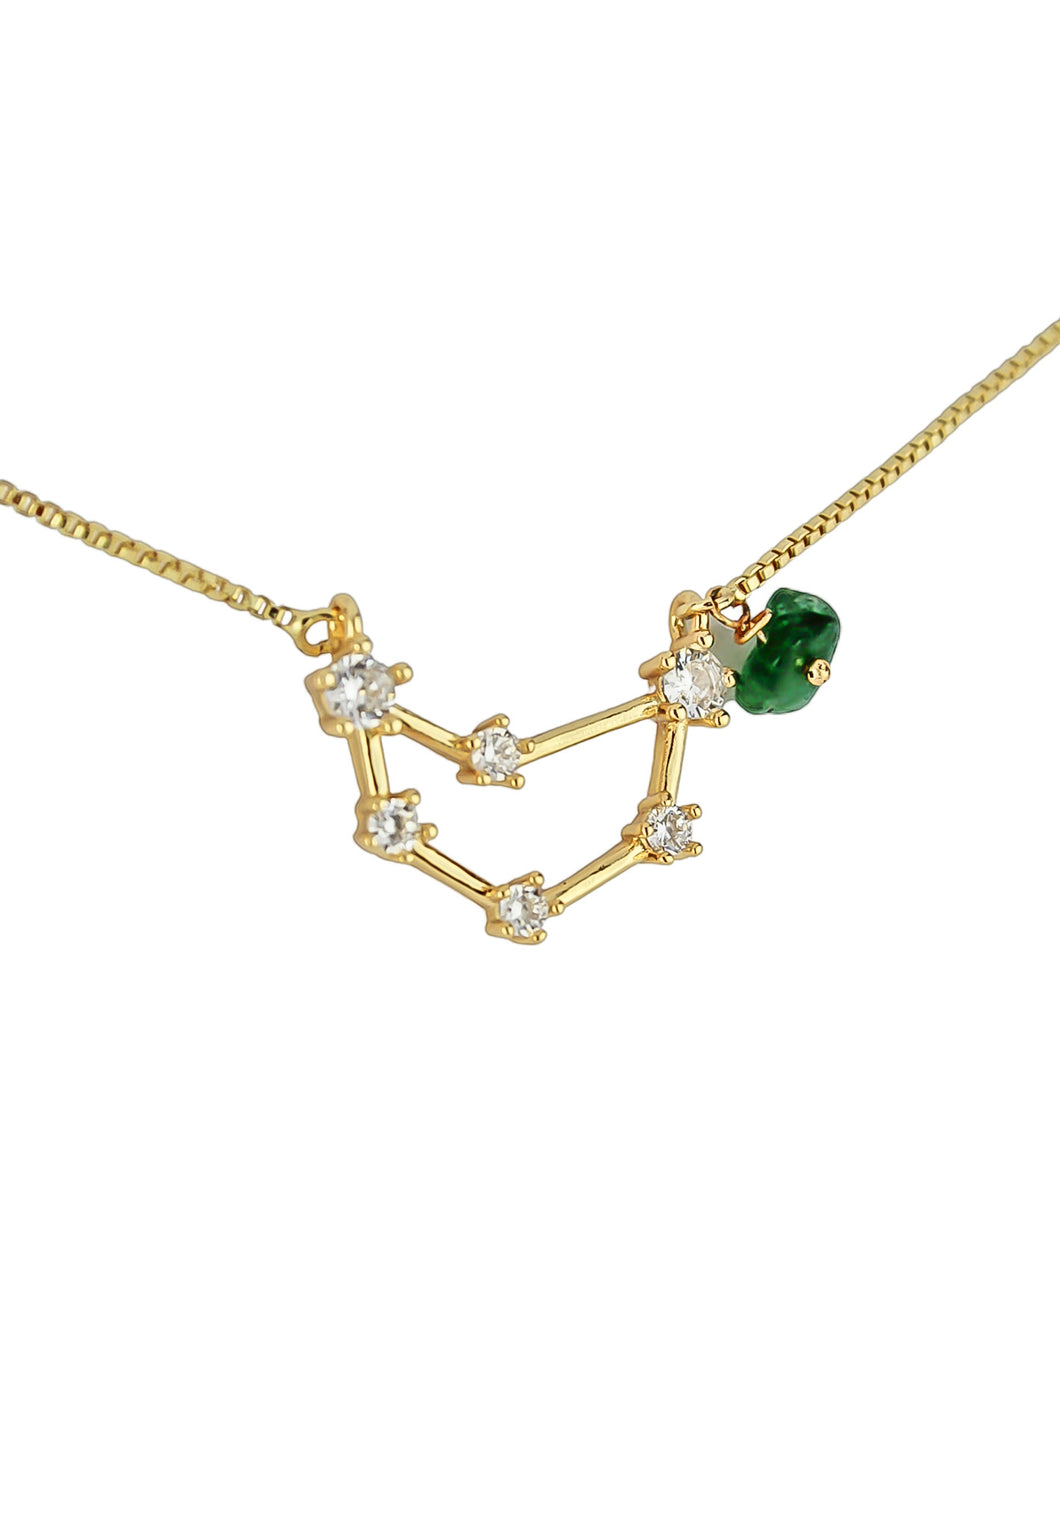 Capricorn Necklace with Green Garnet